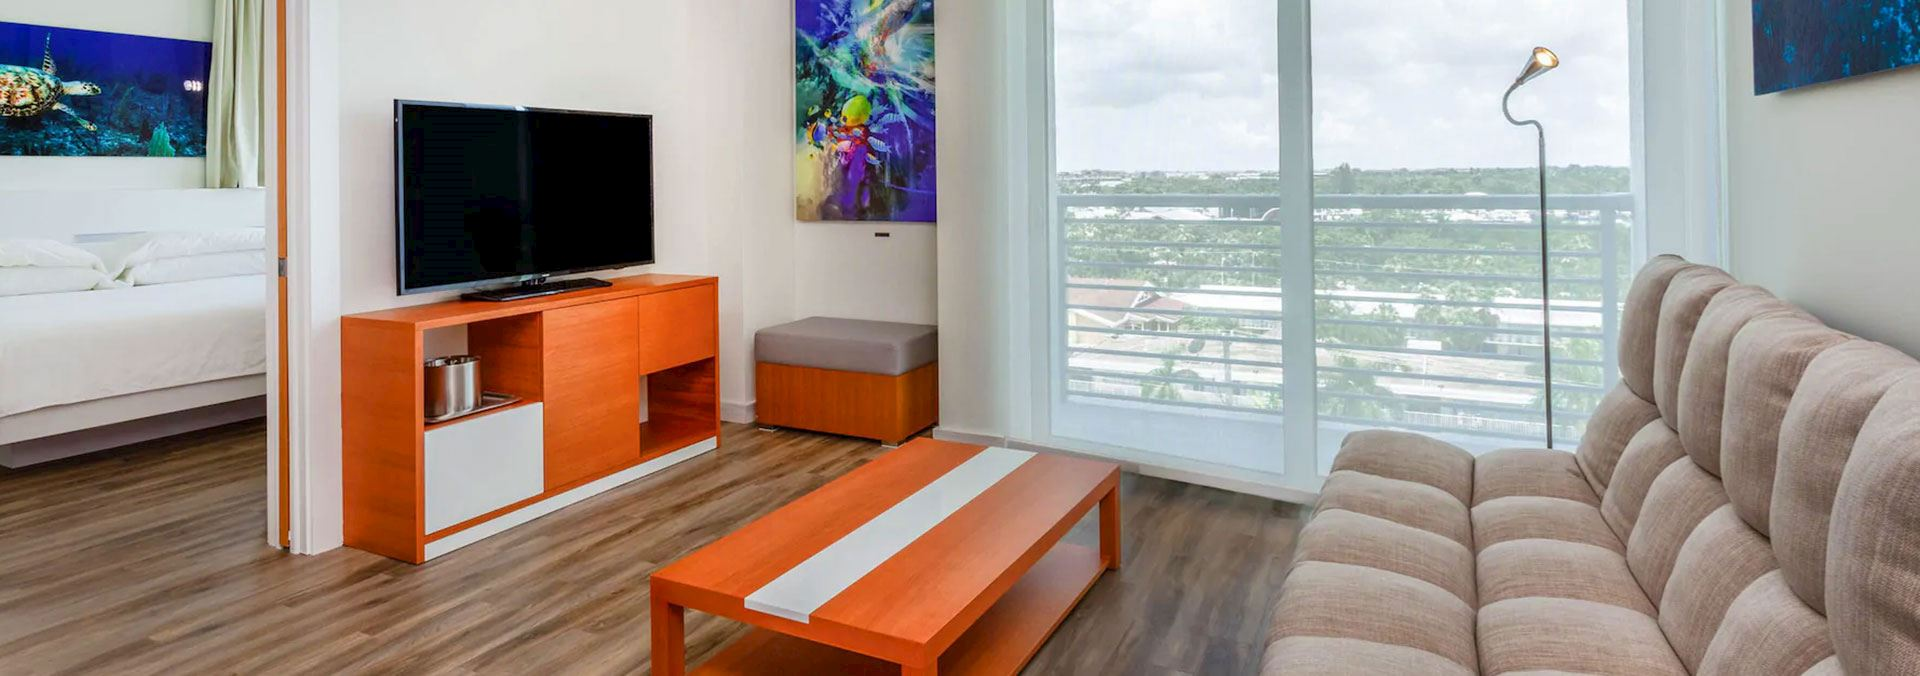 Rooms at TRYP by Wyndham Maritime Fort Lauderdale, Florida